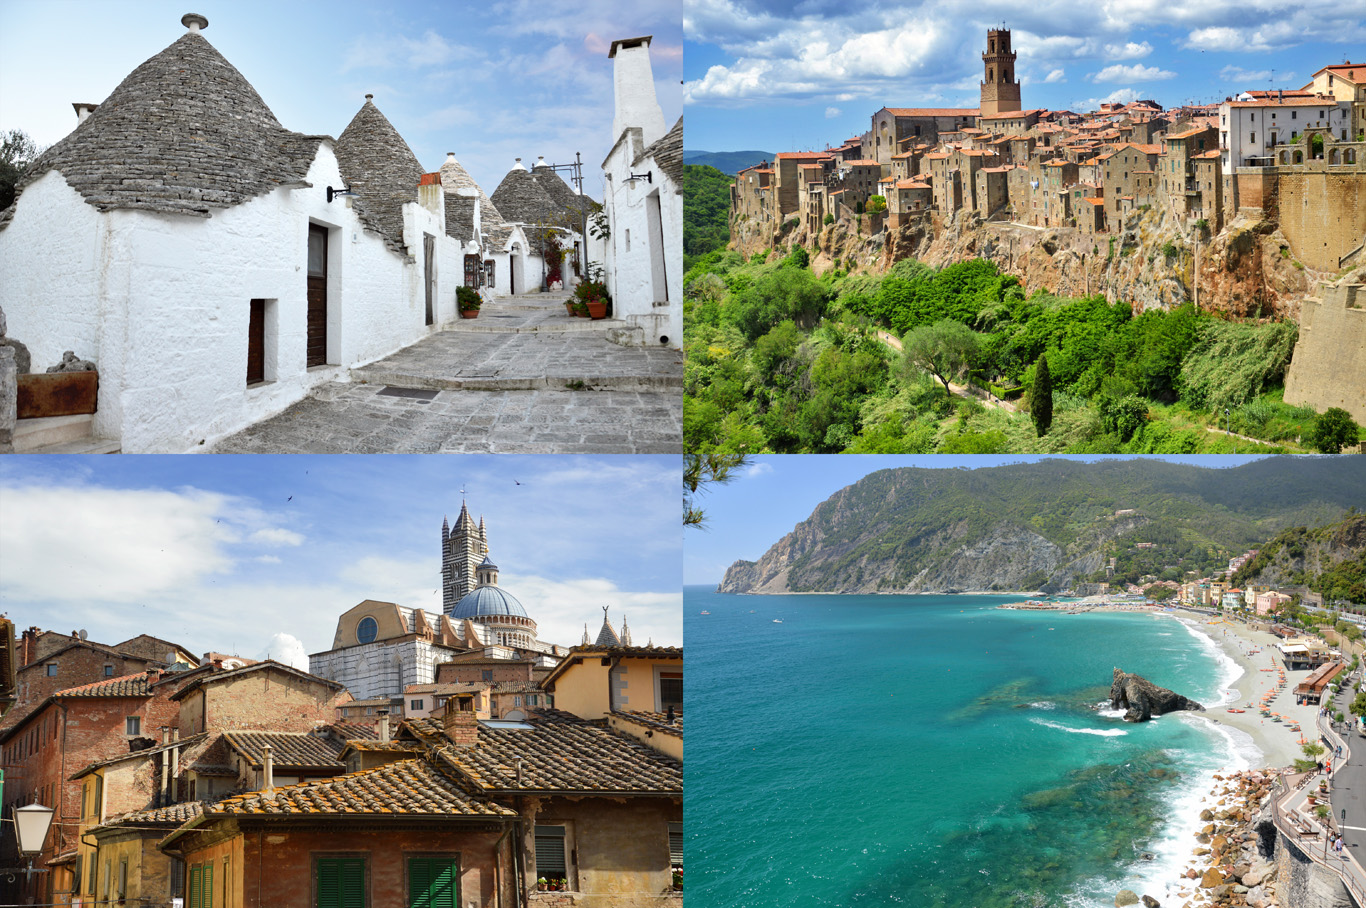 Italy: village of Alberobello, town of Pitigliano, Siena and a beach in Cinque Terre